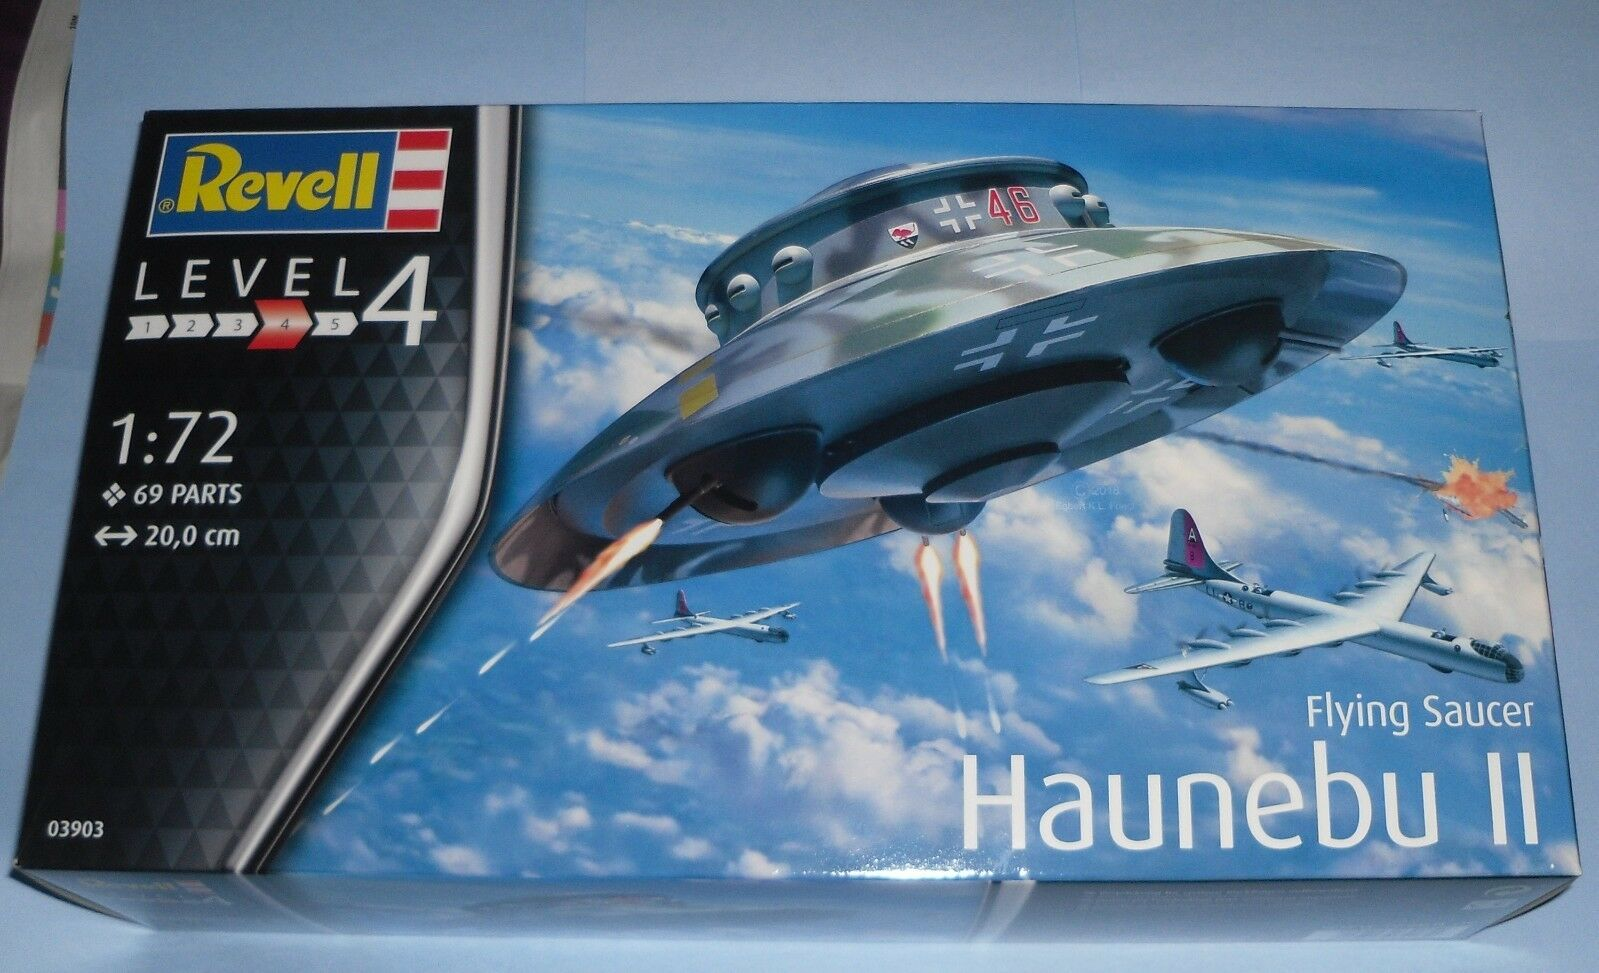 Gift Flying Saucer Haunebu II 1 72 modello Aircraft Kit 039033 by Revel